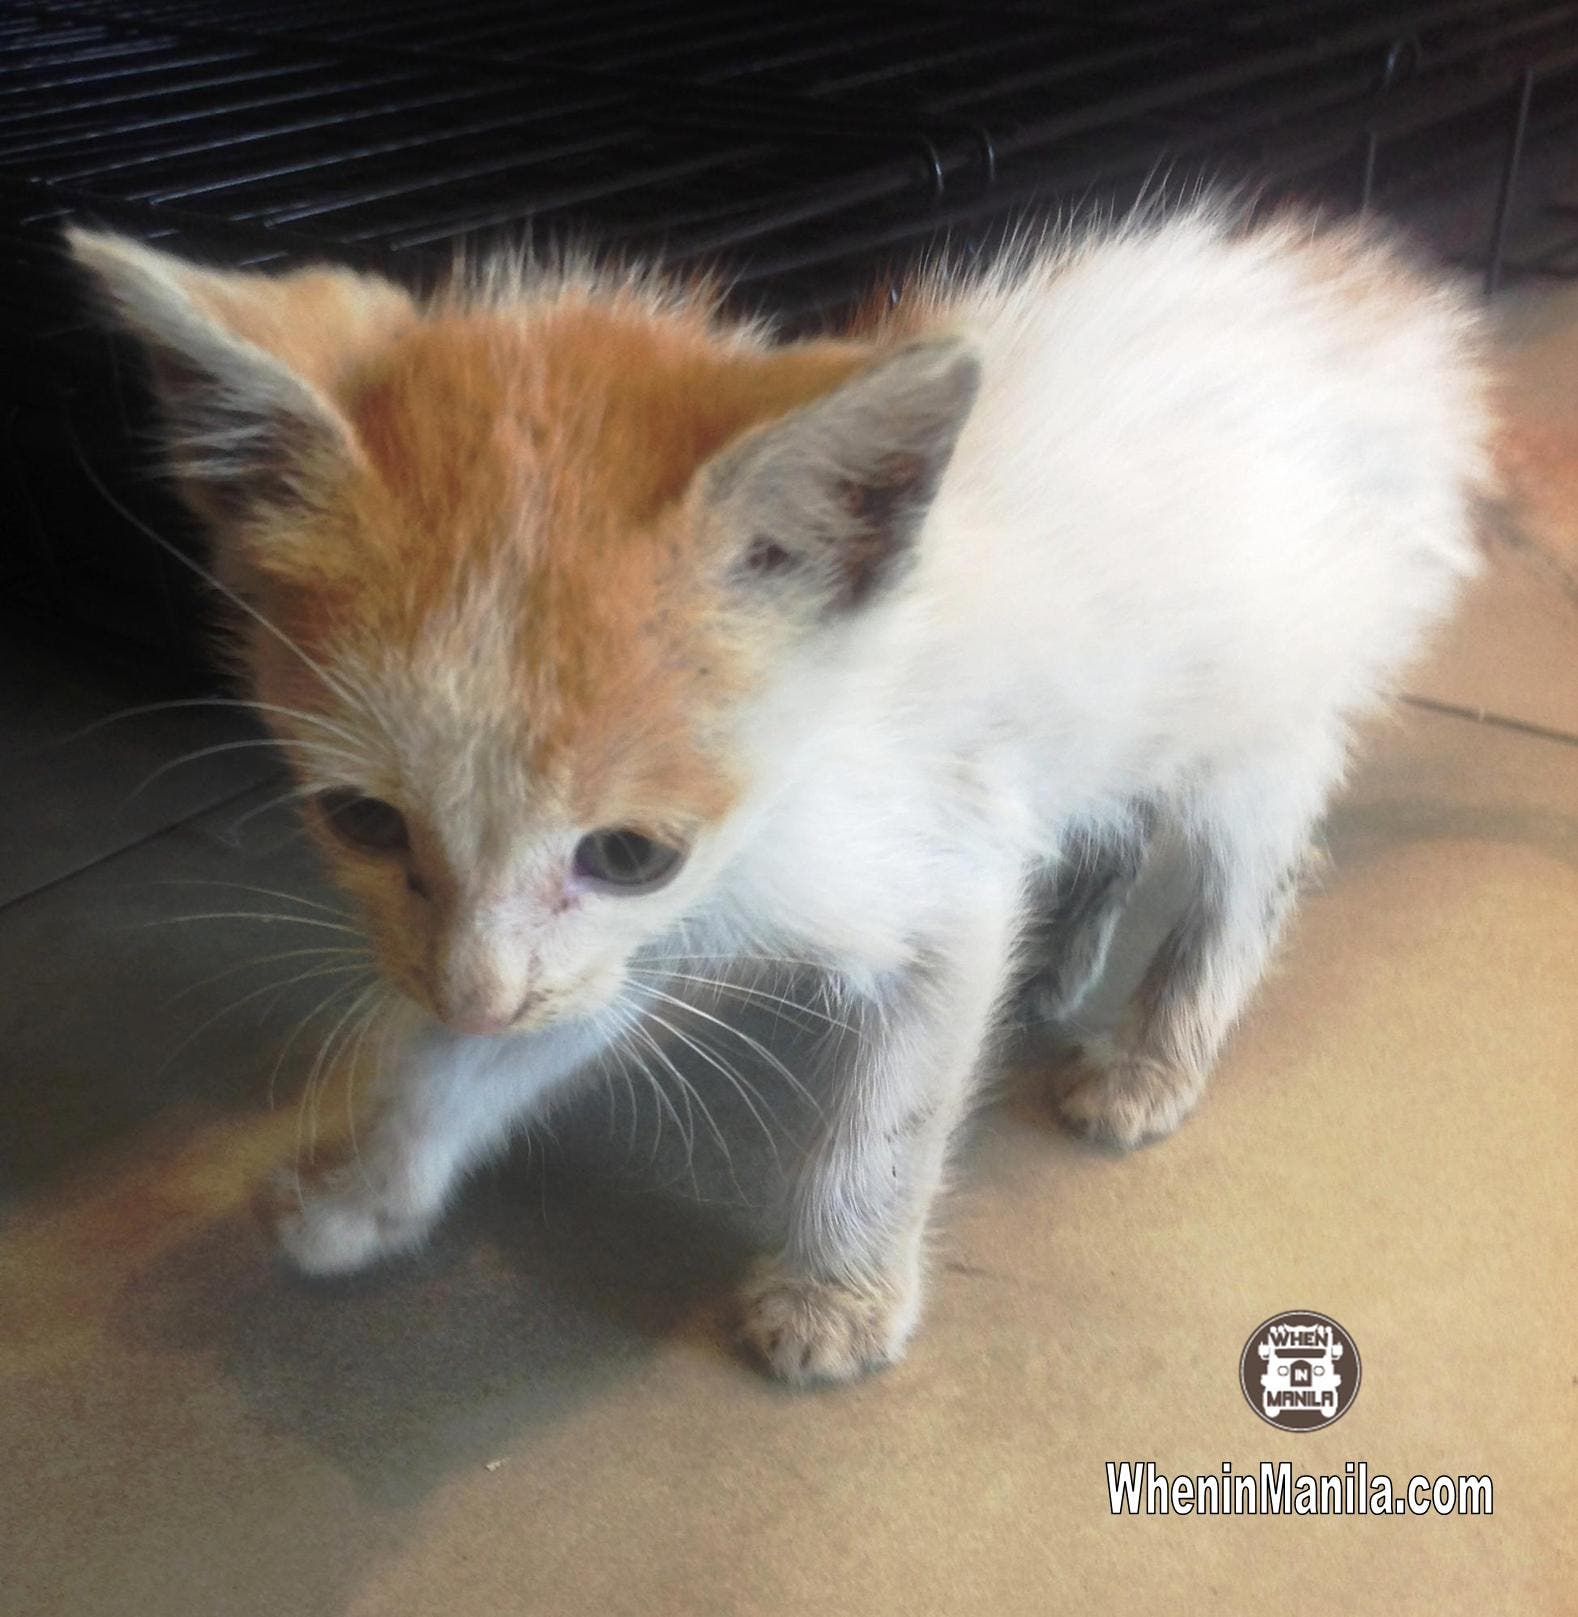 Animal Rescue and Welfare in the Philippines - Dado